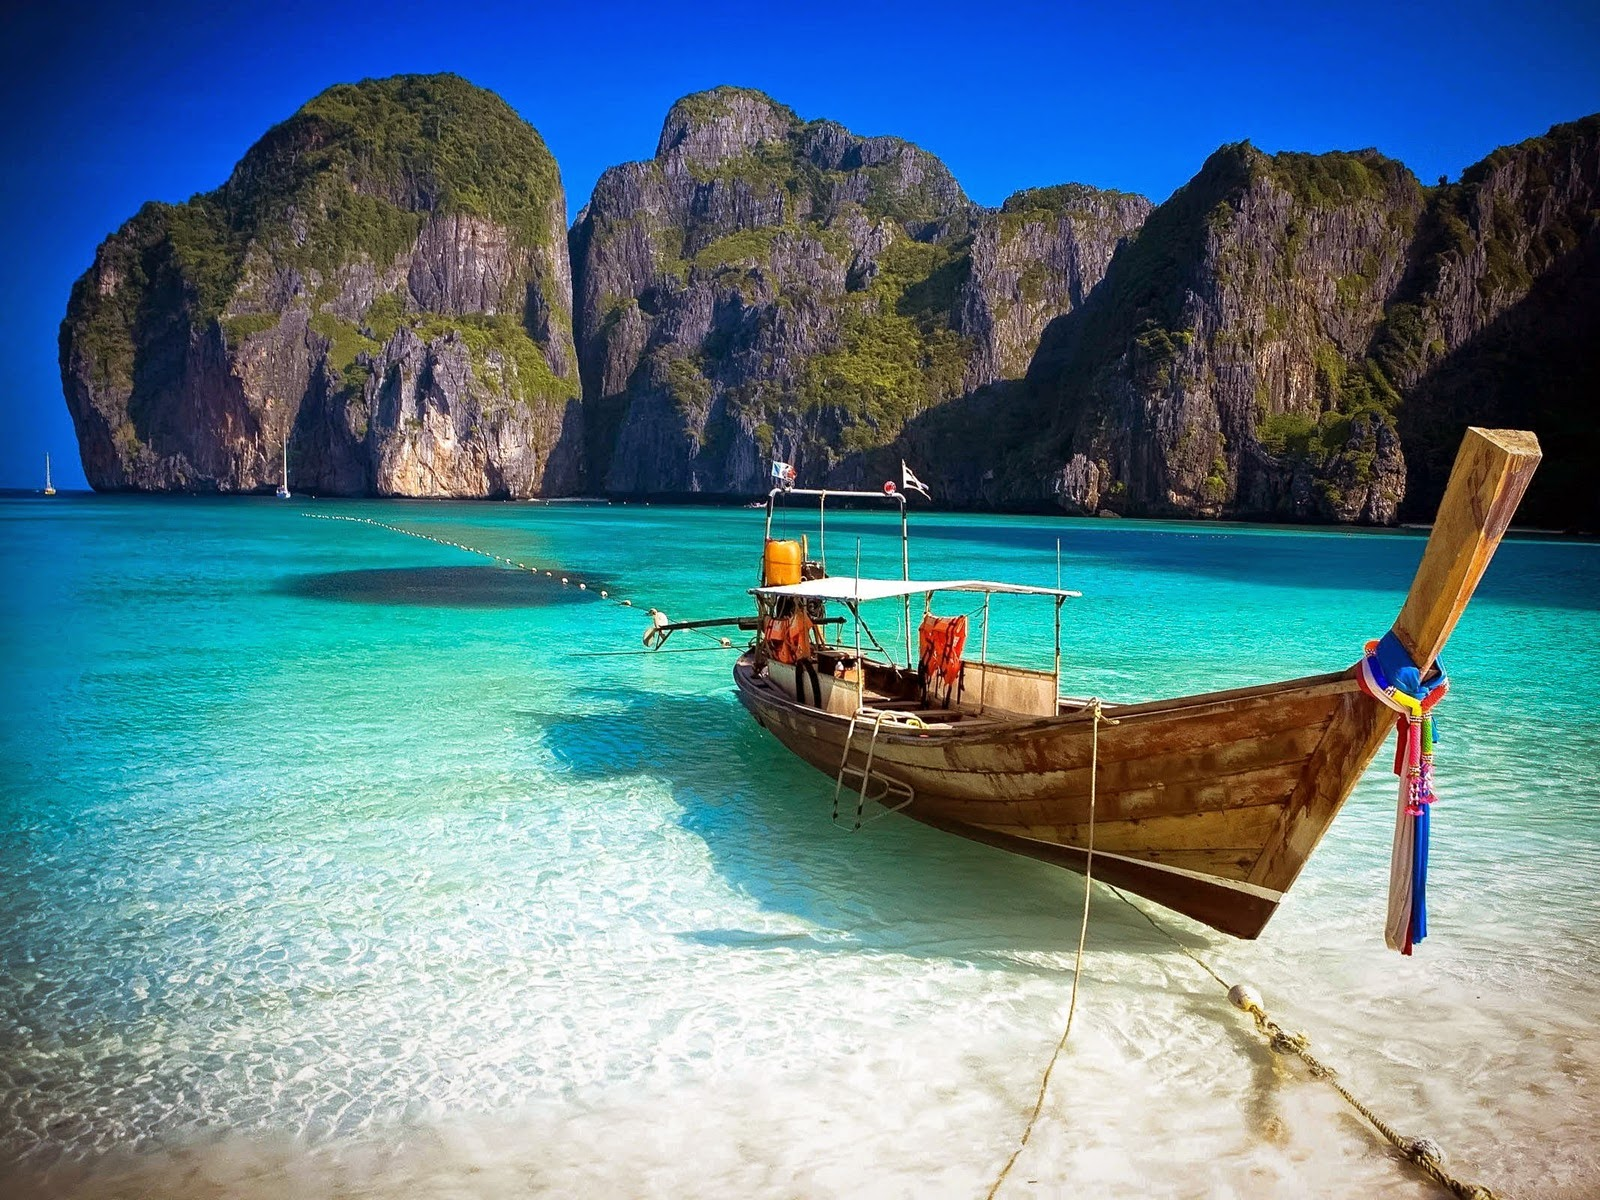 Phi Island Is One Of The Best Holiday Destinations In Thailand Where People Throng From All Over World Especially Summer Season